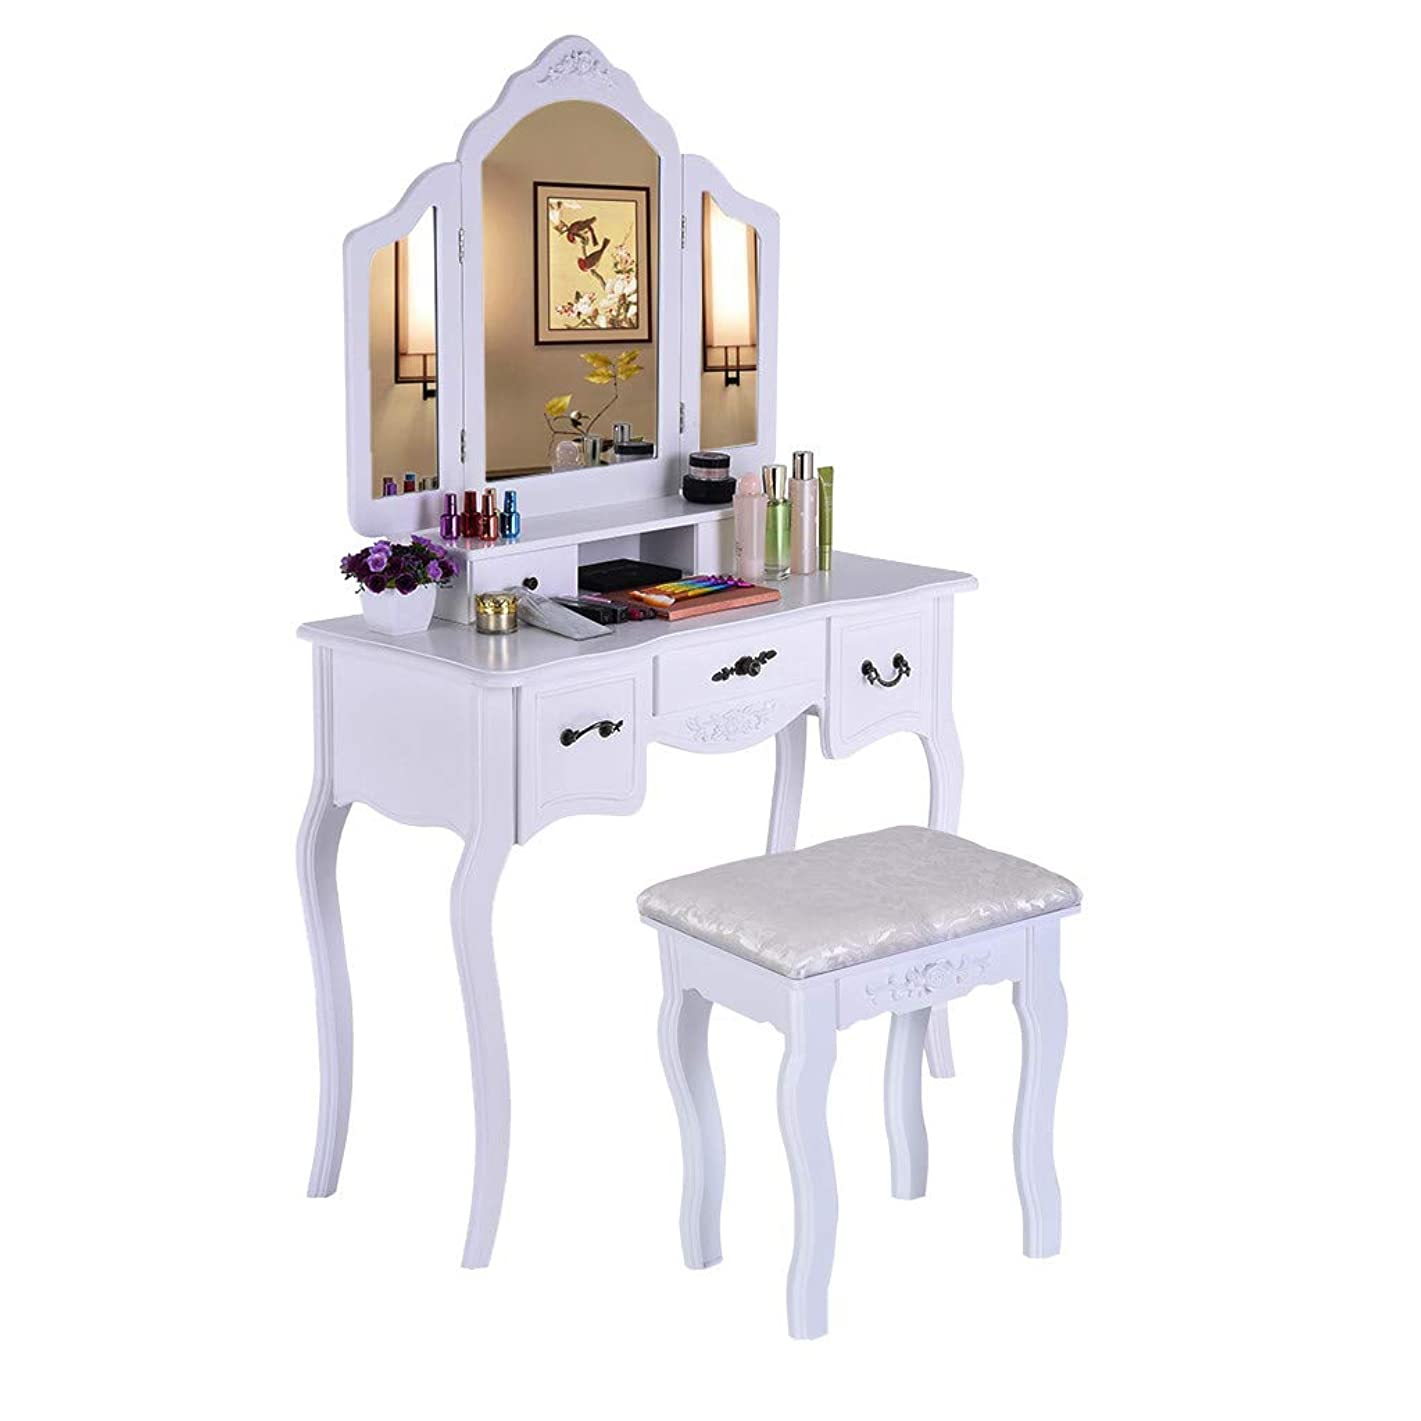 Beyonds White Luxury Dressing Table with 3 Mirror and Solid Wood Stool,90° Rotation Detachable Mirror,5 Drawers Adjustable Vanity Table Set Makeup Dresser